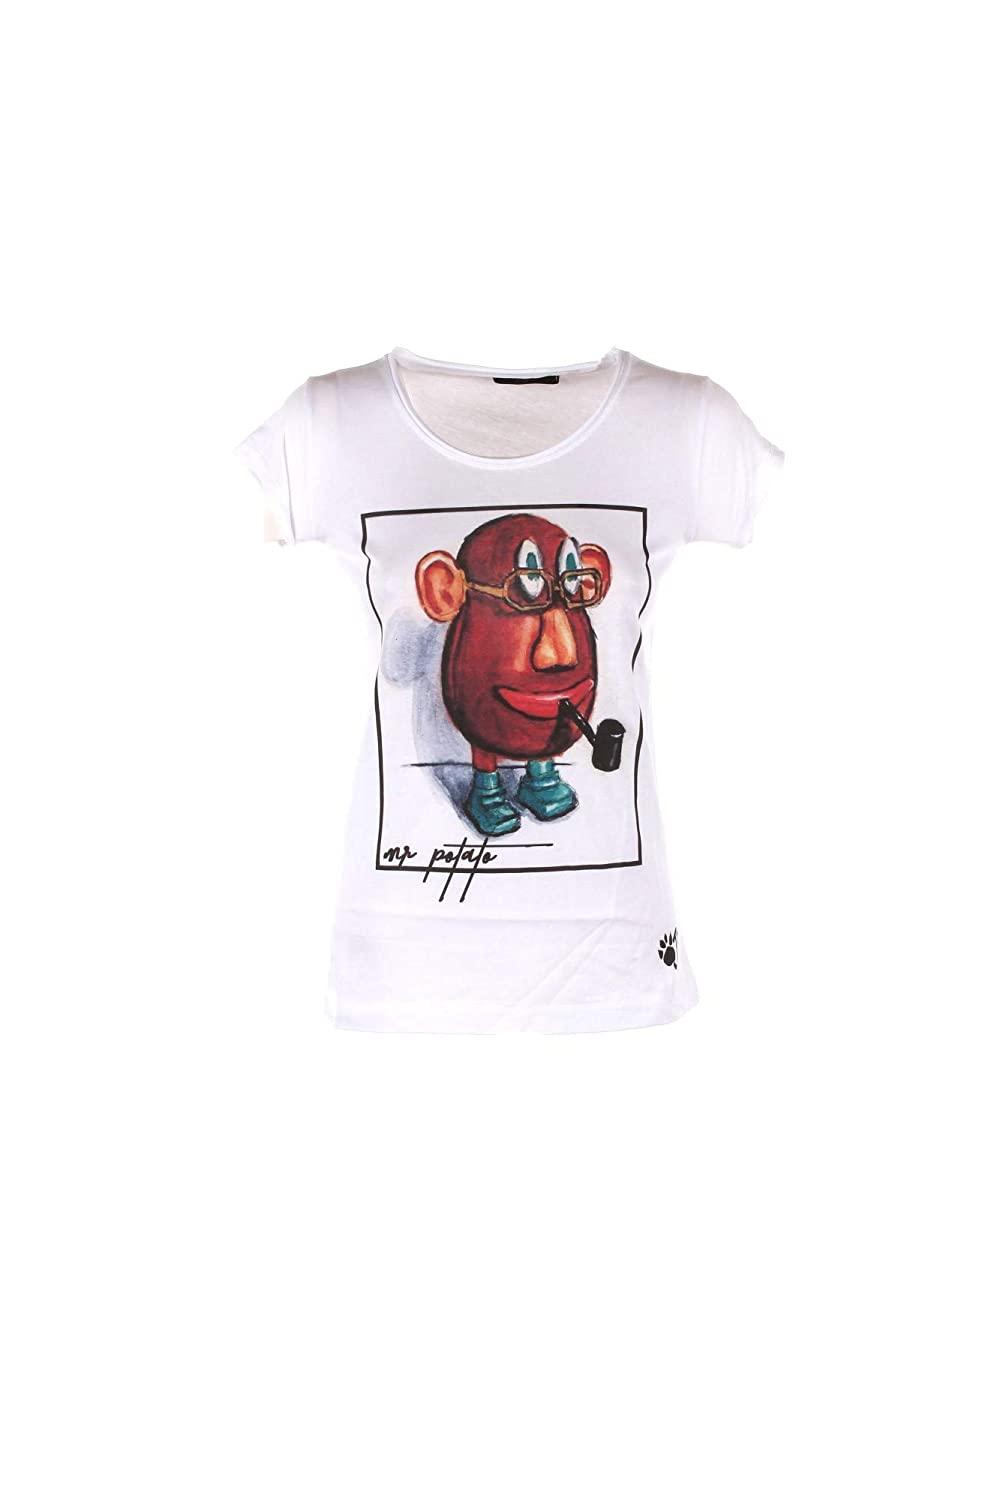 OJI T-Shirt Donna L Bianco Mr. Potato Autunno Inverno 2018/19